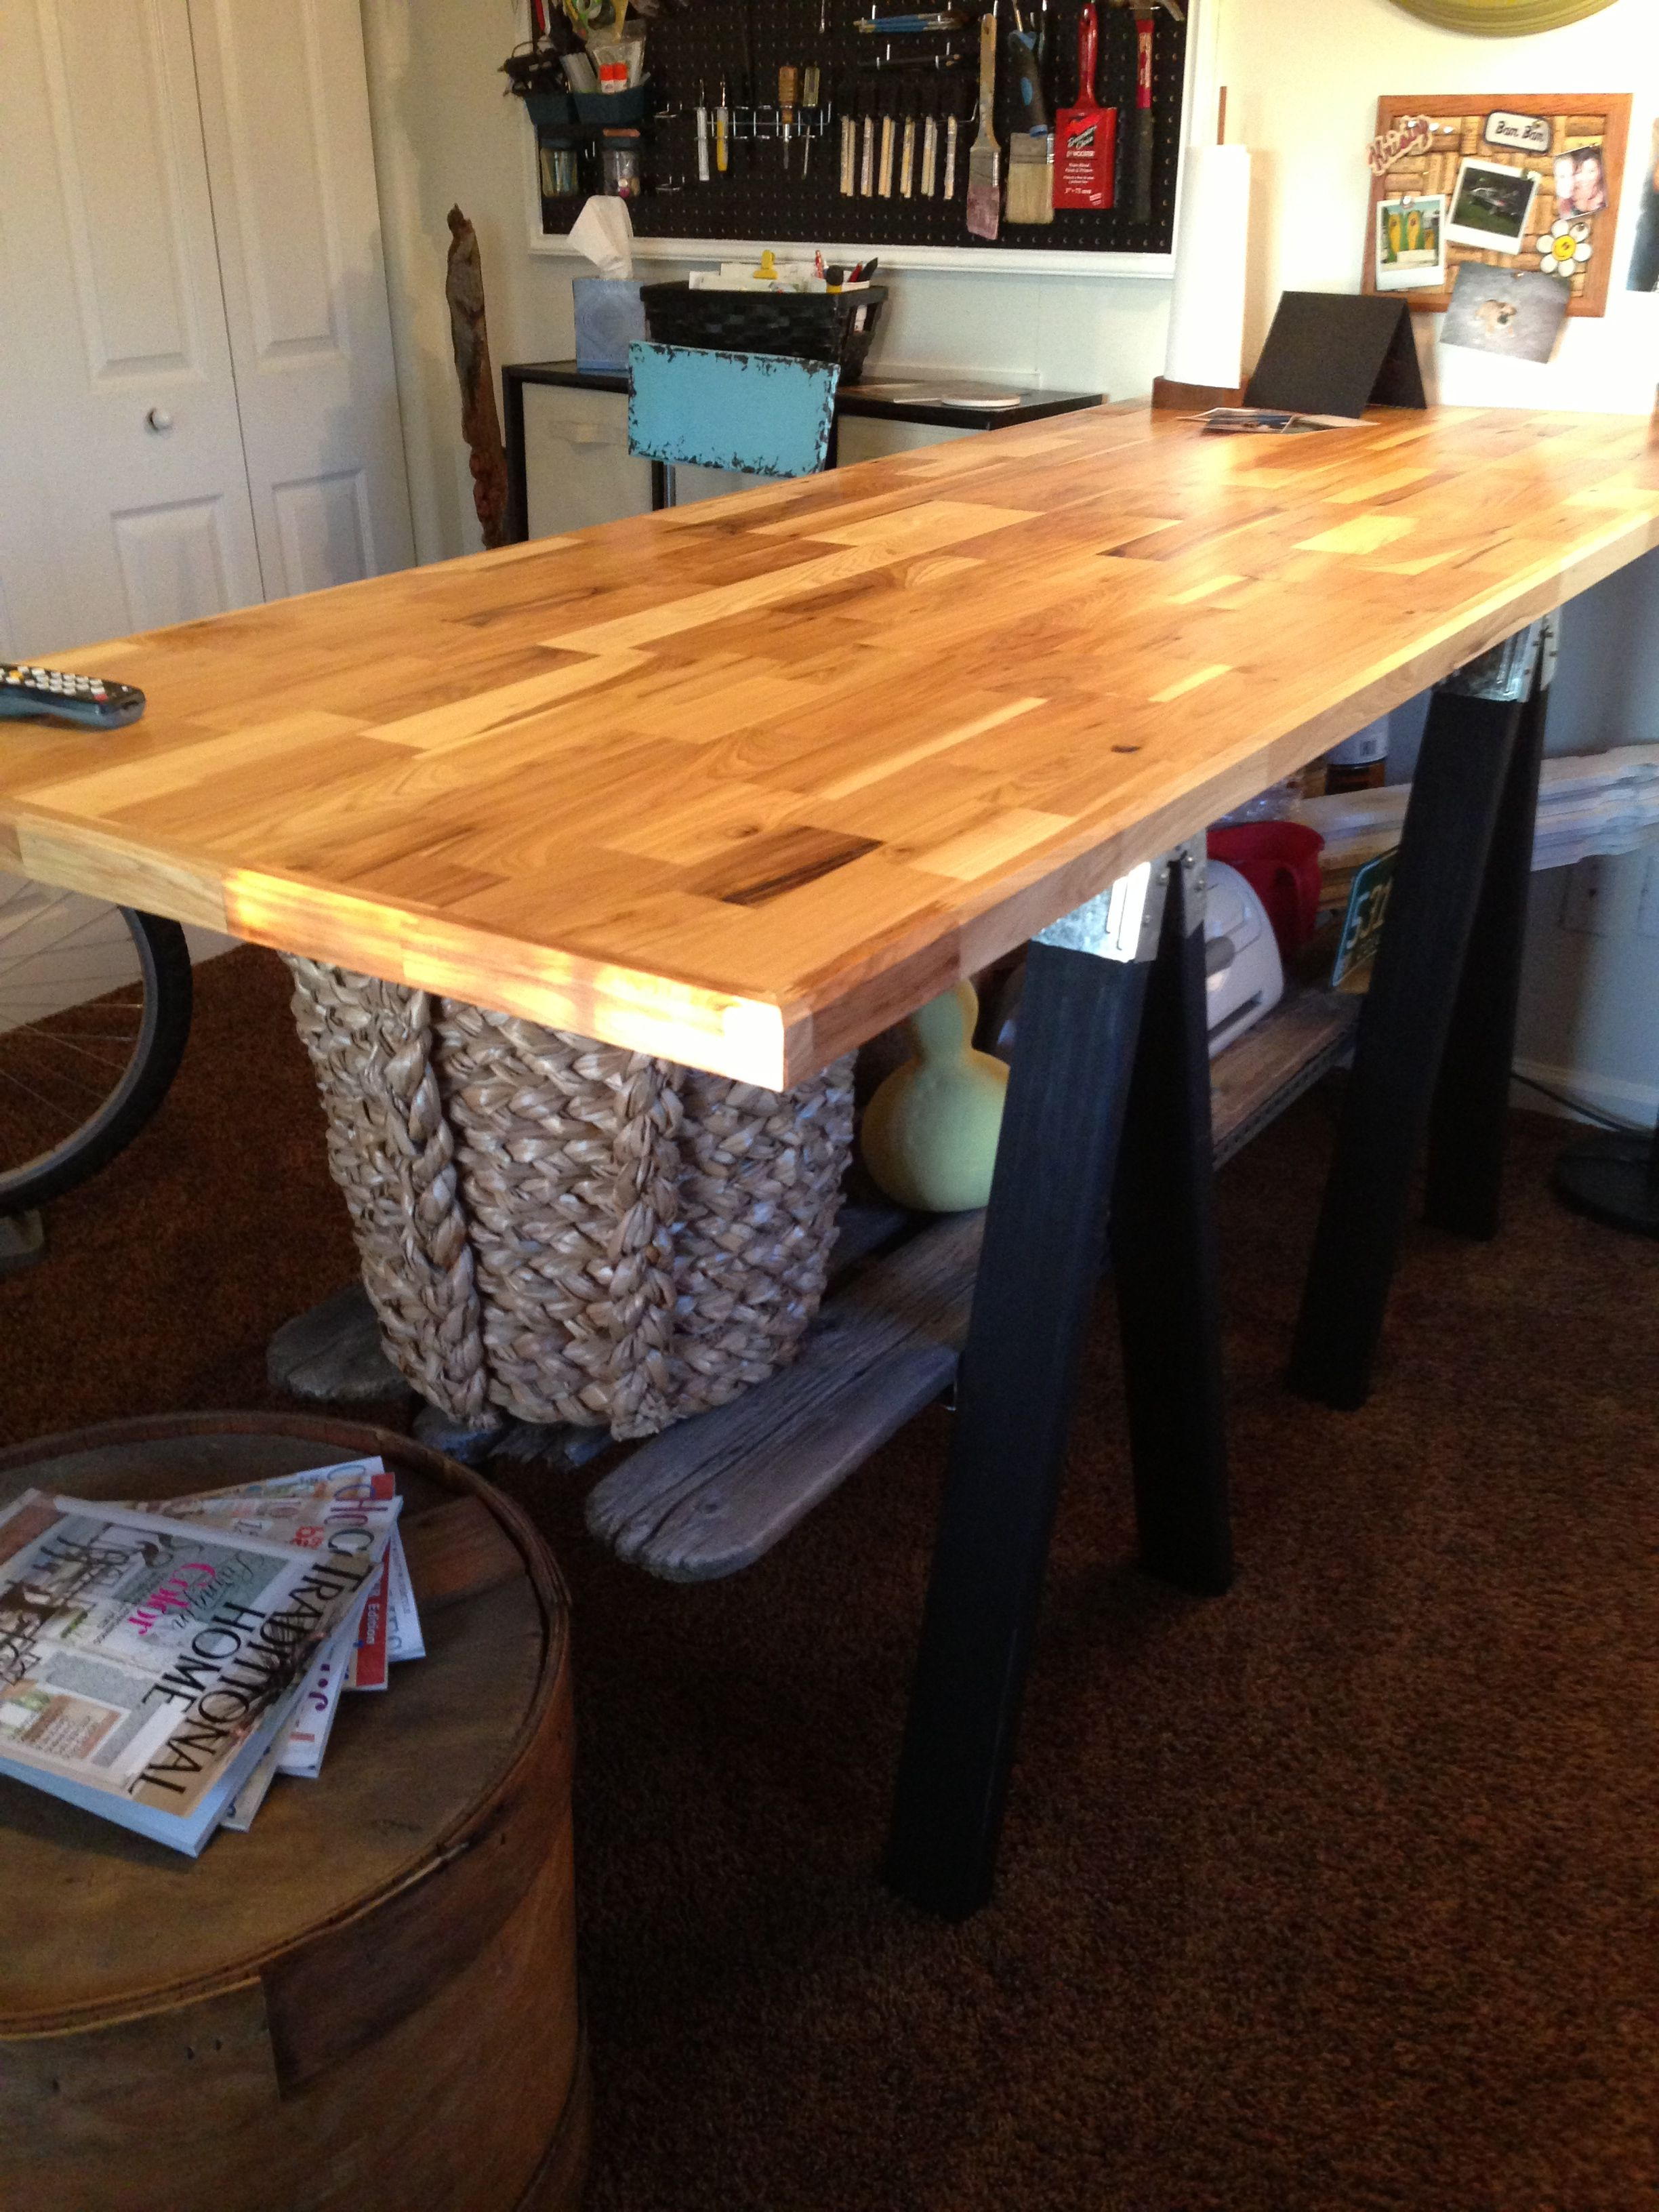 DIY Craft Table (love it ) !! 7 x 3 butcher block top with saw horse legs & rustic shelf ...